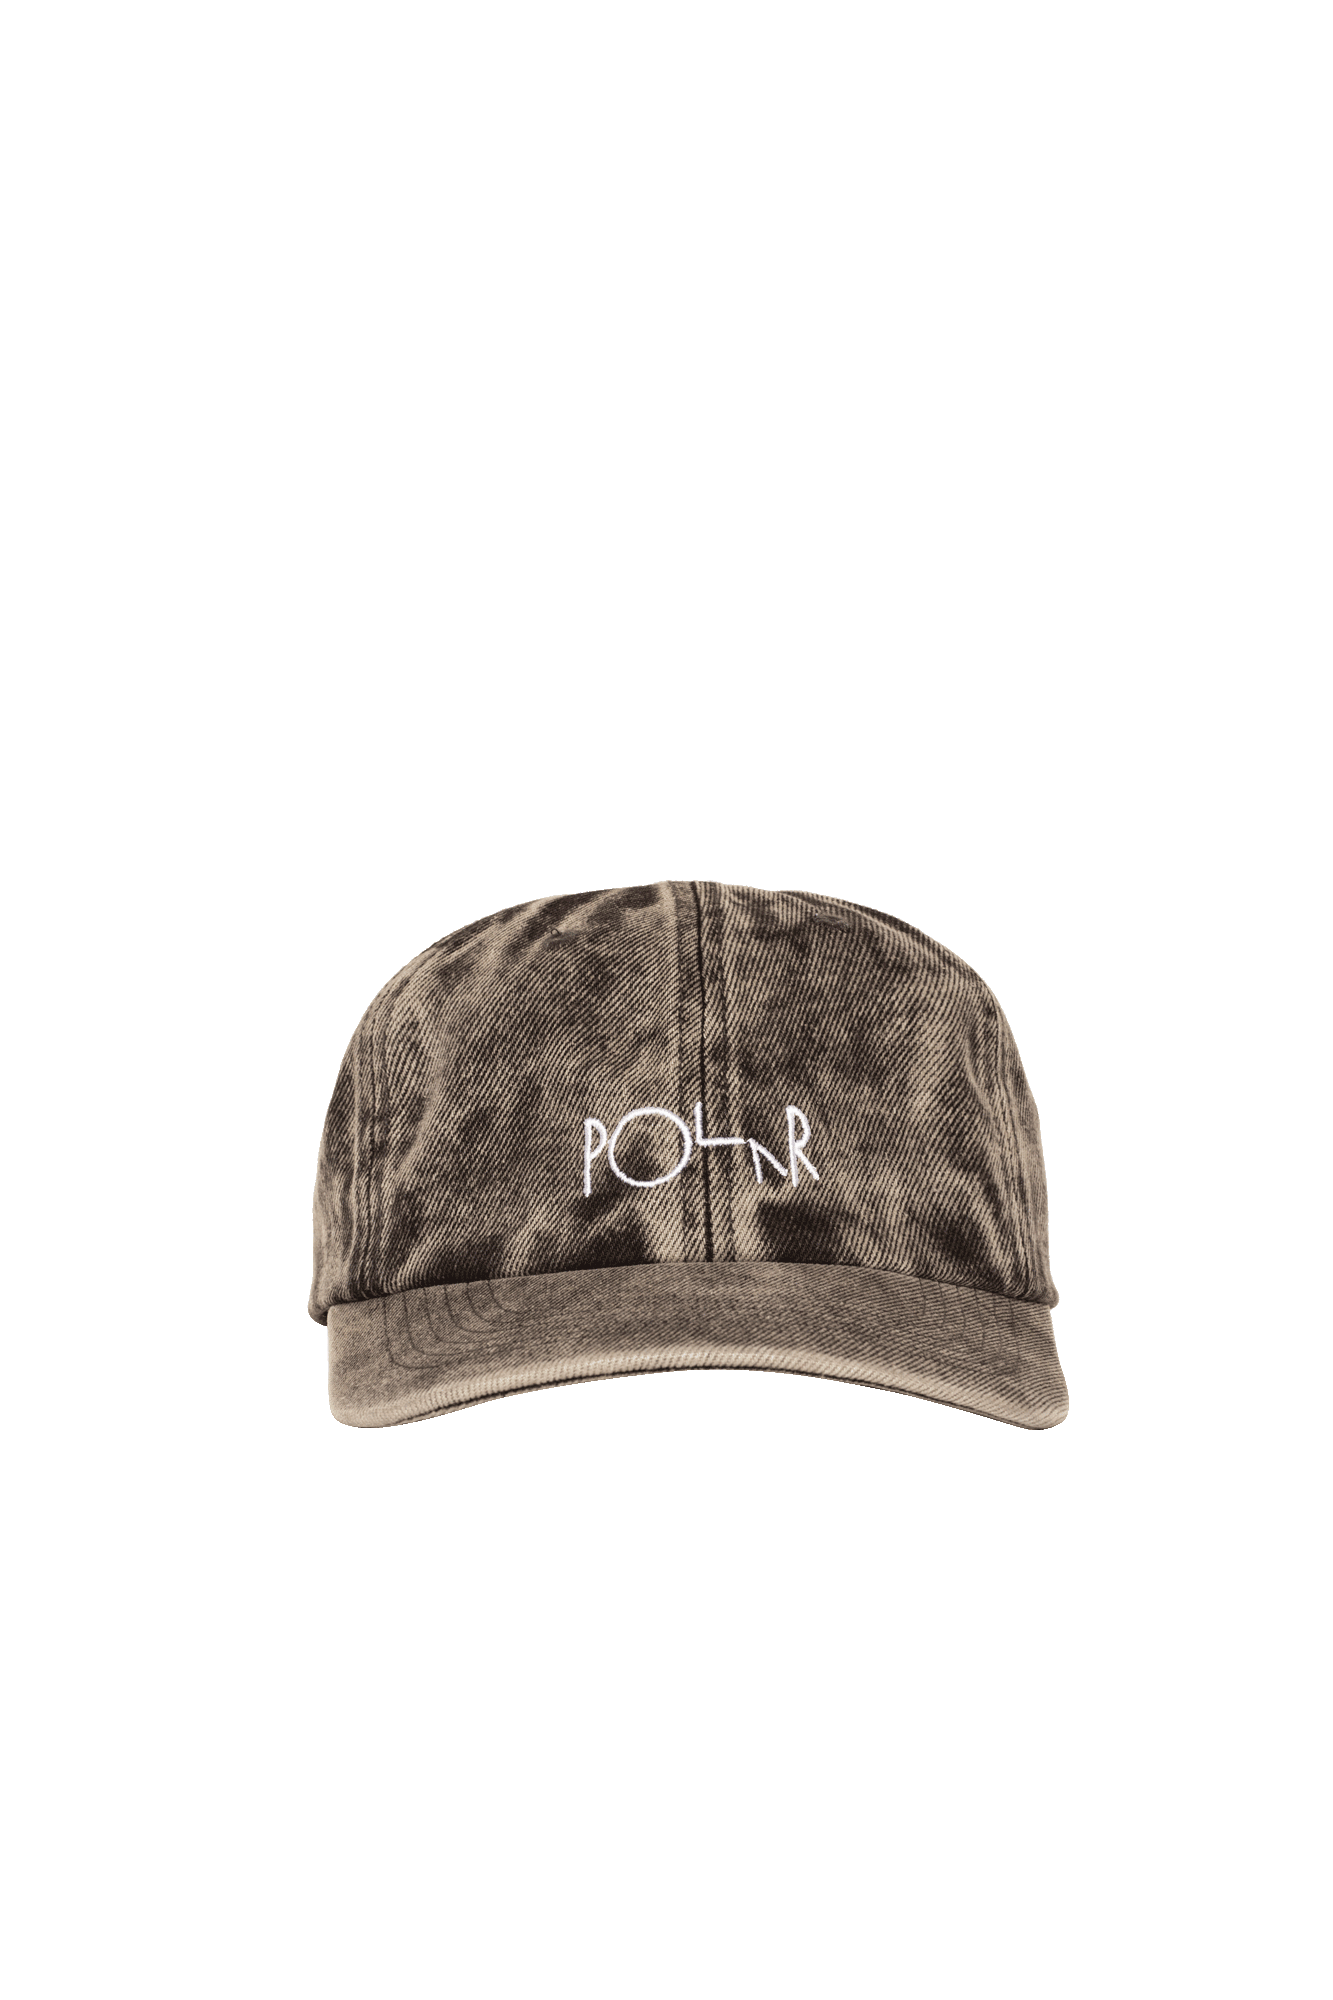 Polar Cappelli Denim Cap Nero POL- DENIM#CAP#BLACK#OS - One Block Down